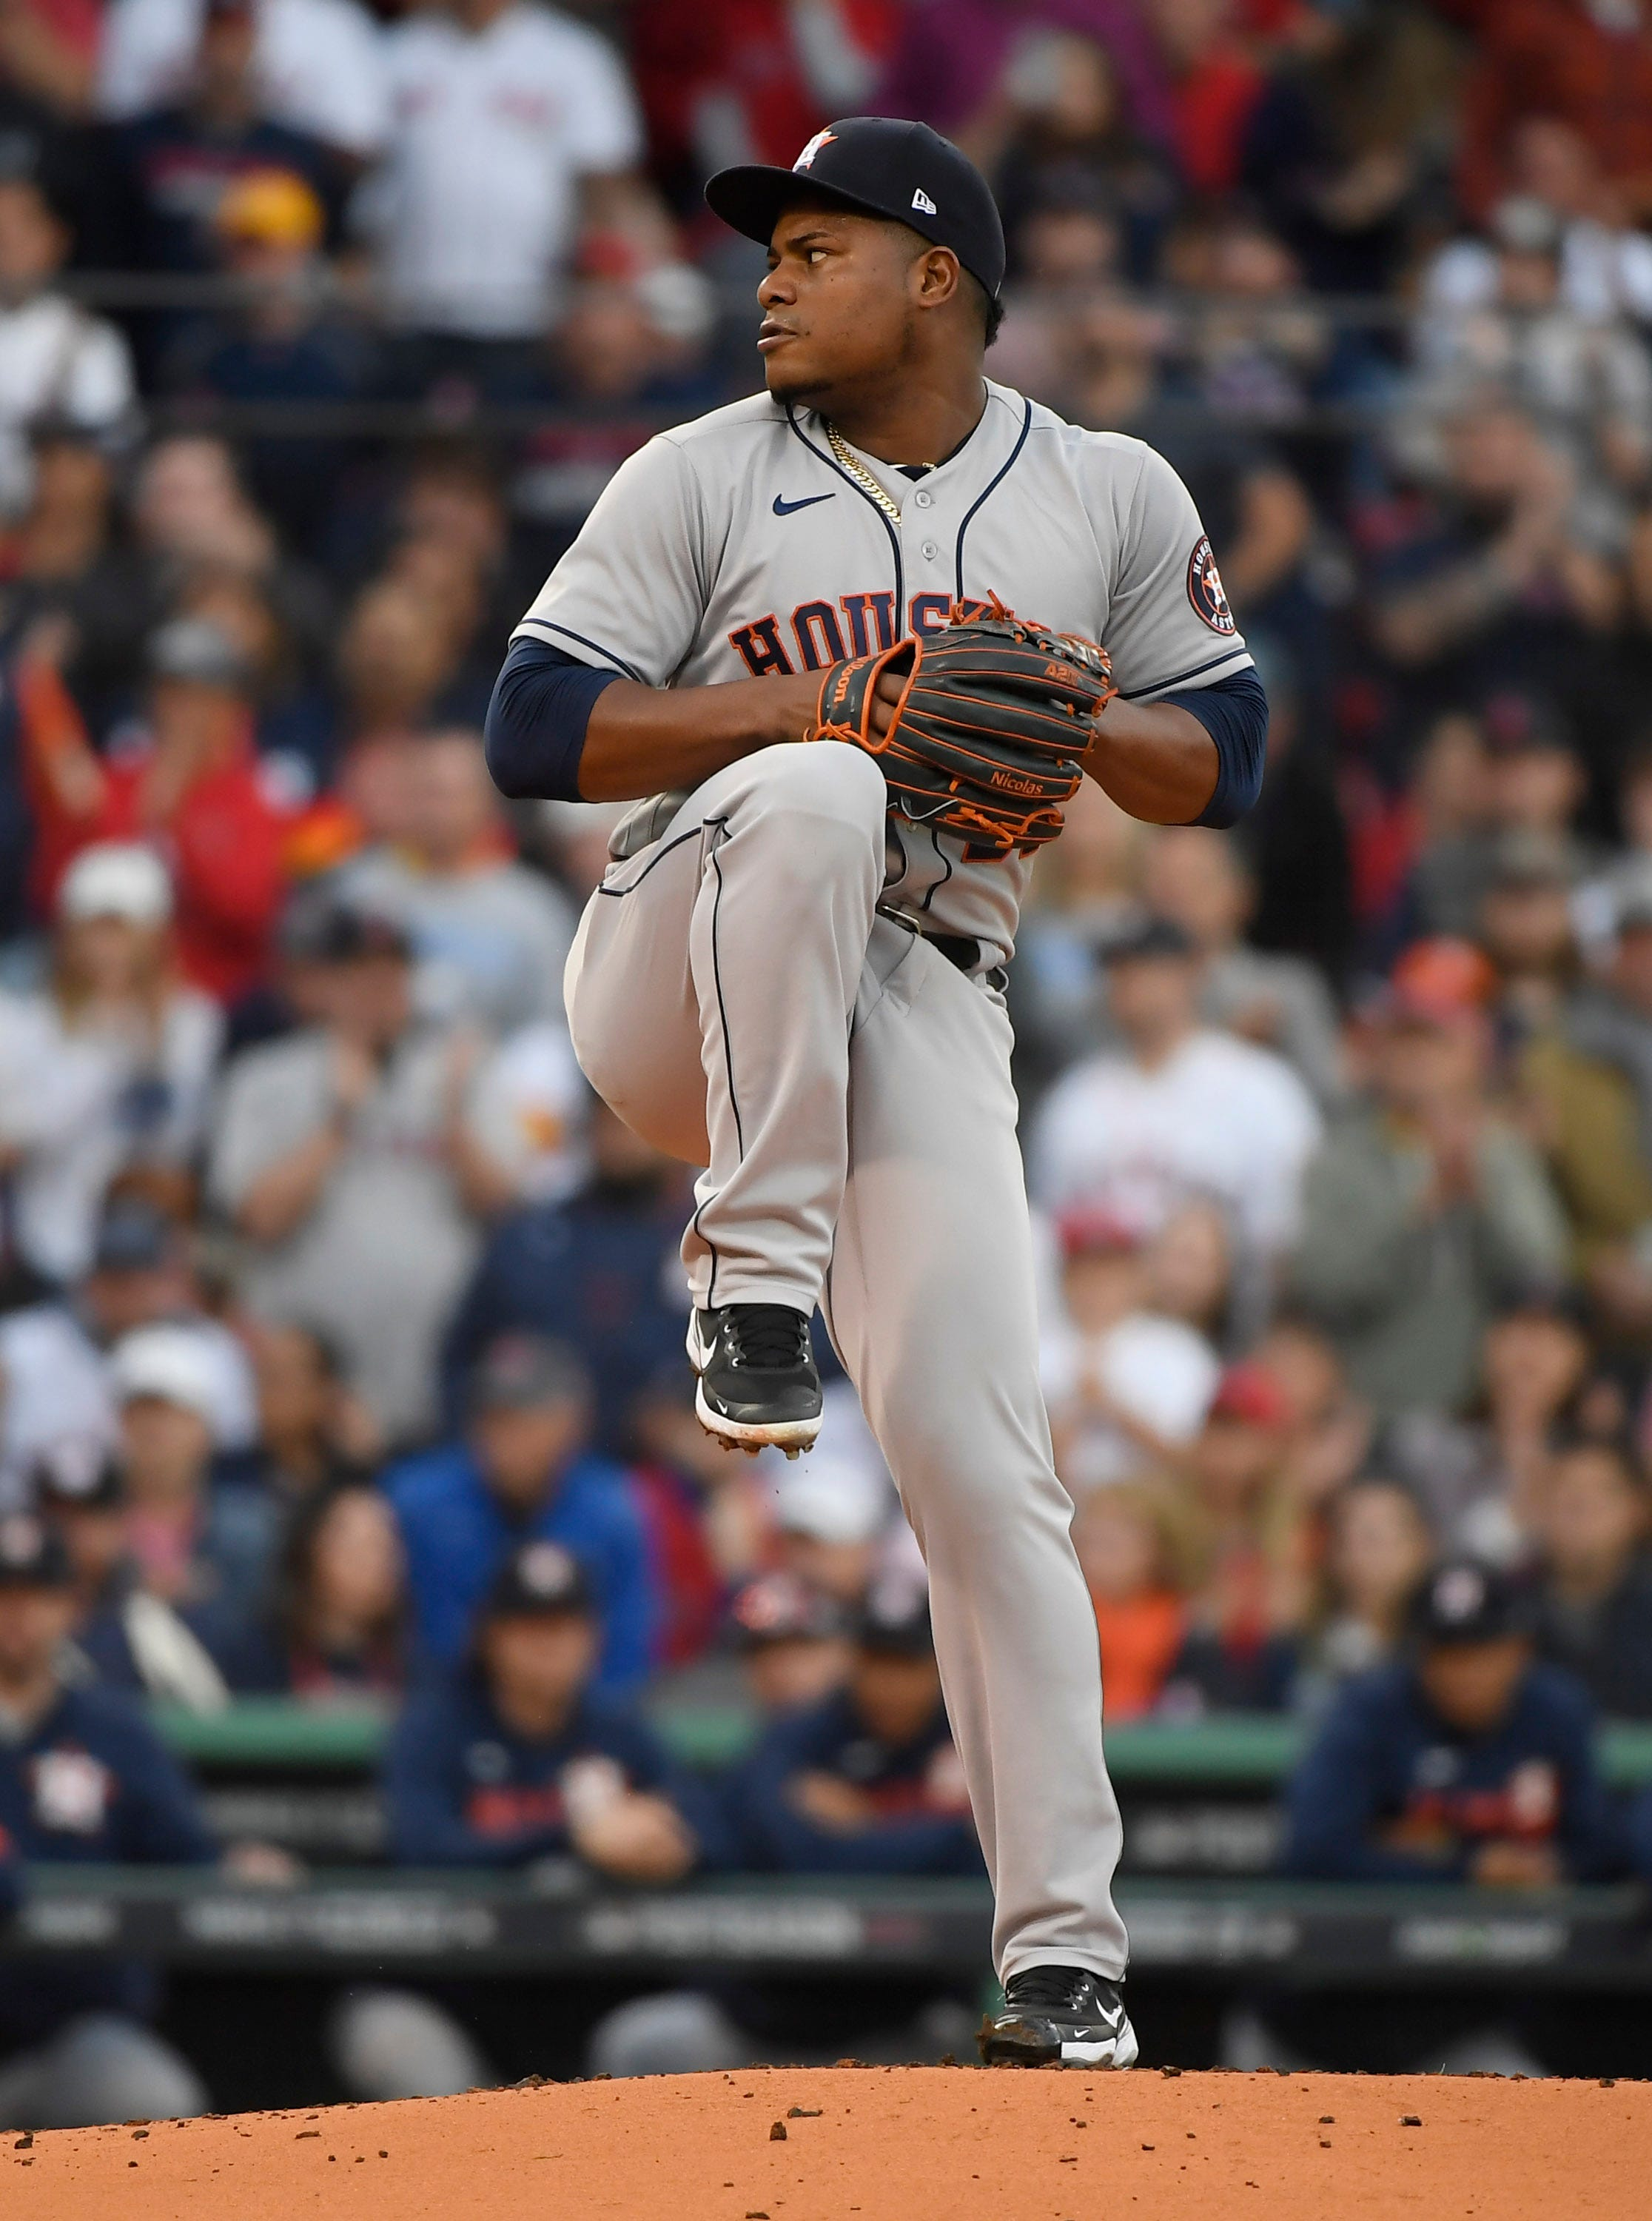 Just breathe: Astros lefty Framber Valdez takes his own advice to pitch game of life in ALCS Game 5